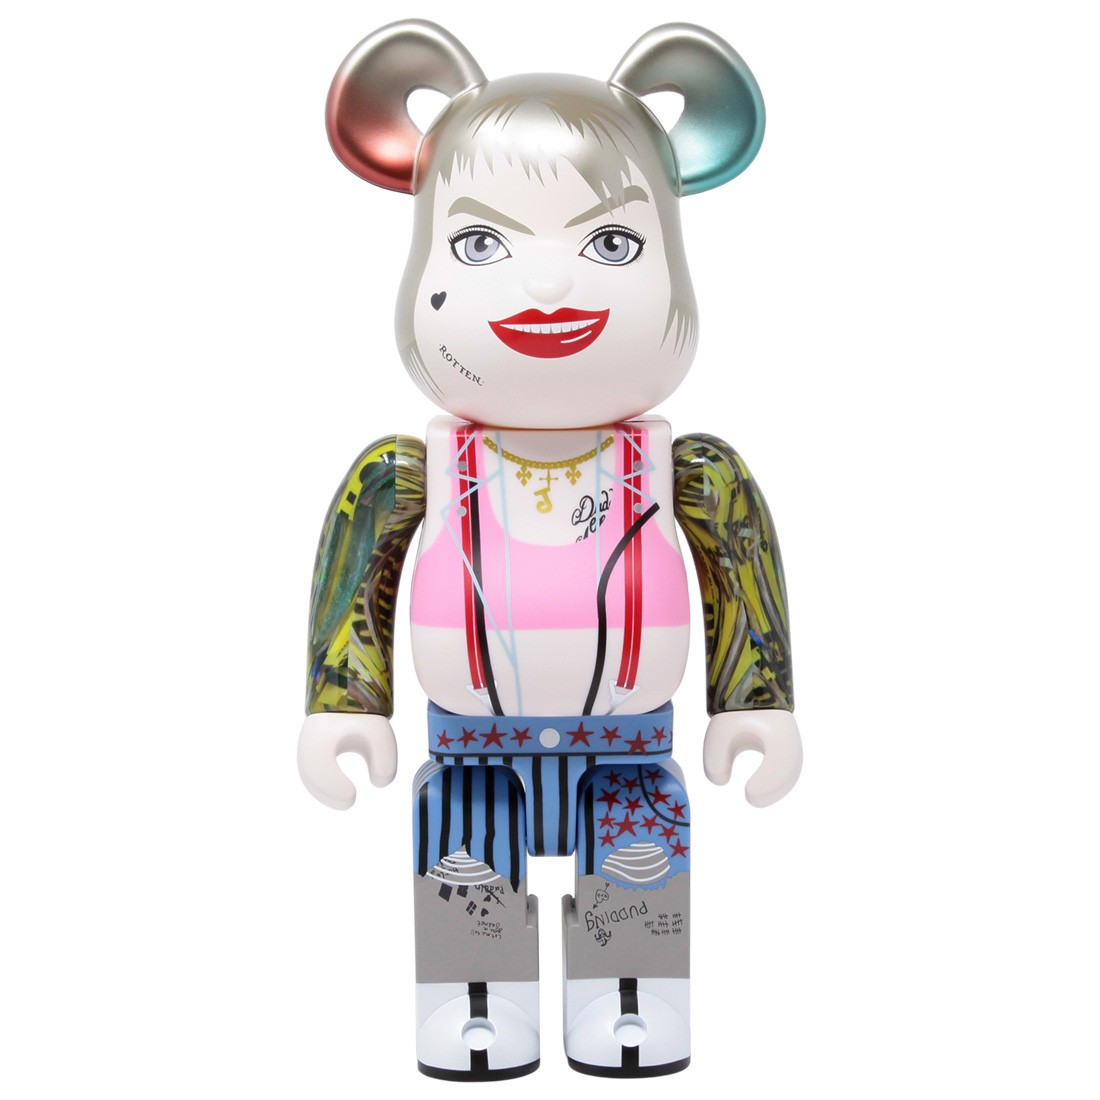 Medicom Birds Of Prey Harley Quinn 400% Bearbrick Figure (white)